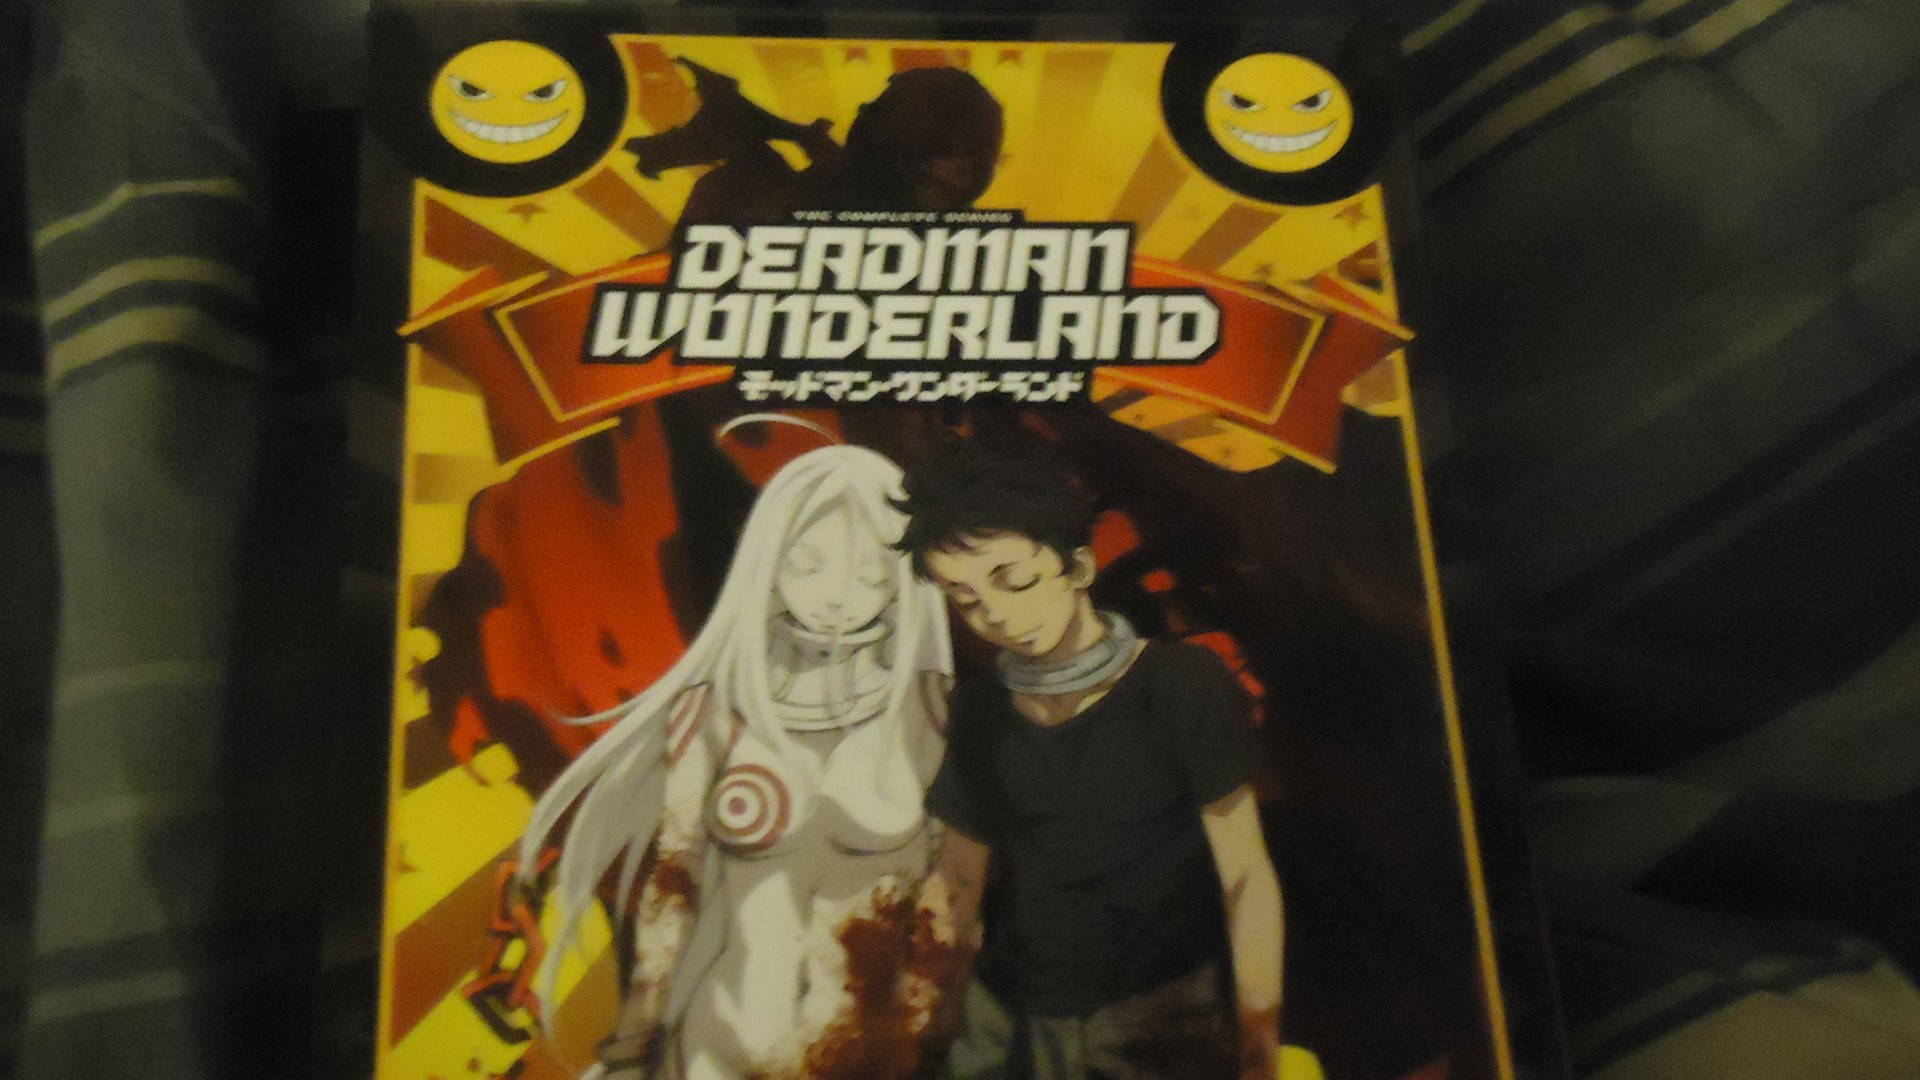 1920x1080 Download Deadman wonderland senji, Deadman wonderland season 1 wallpaper